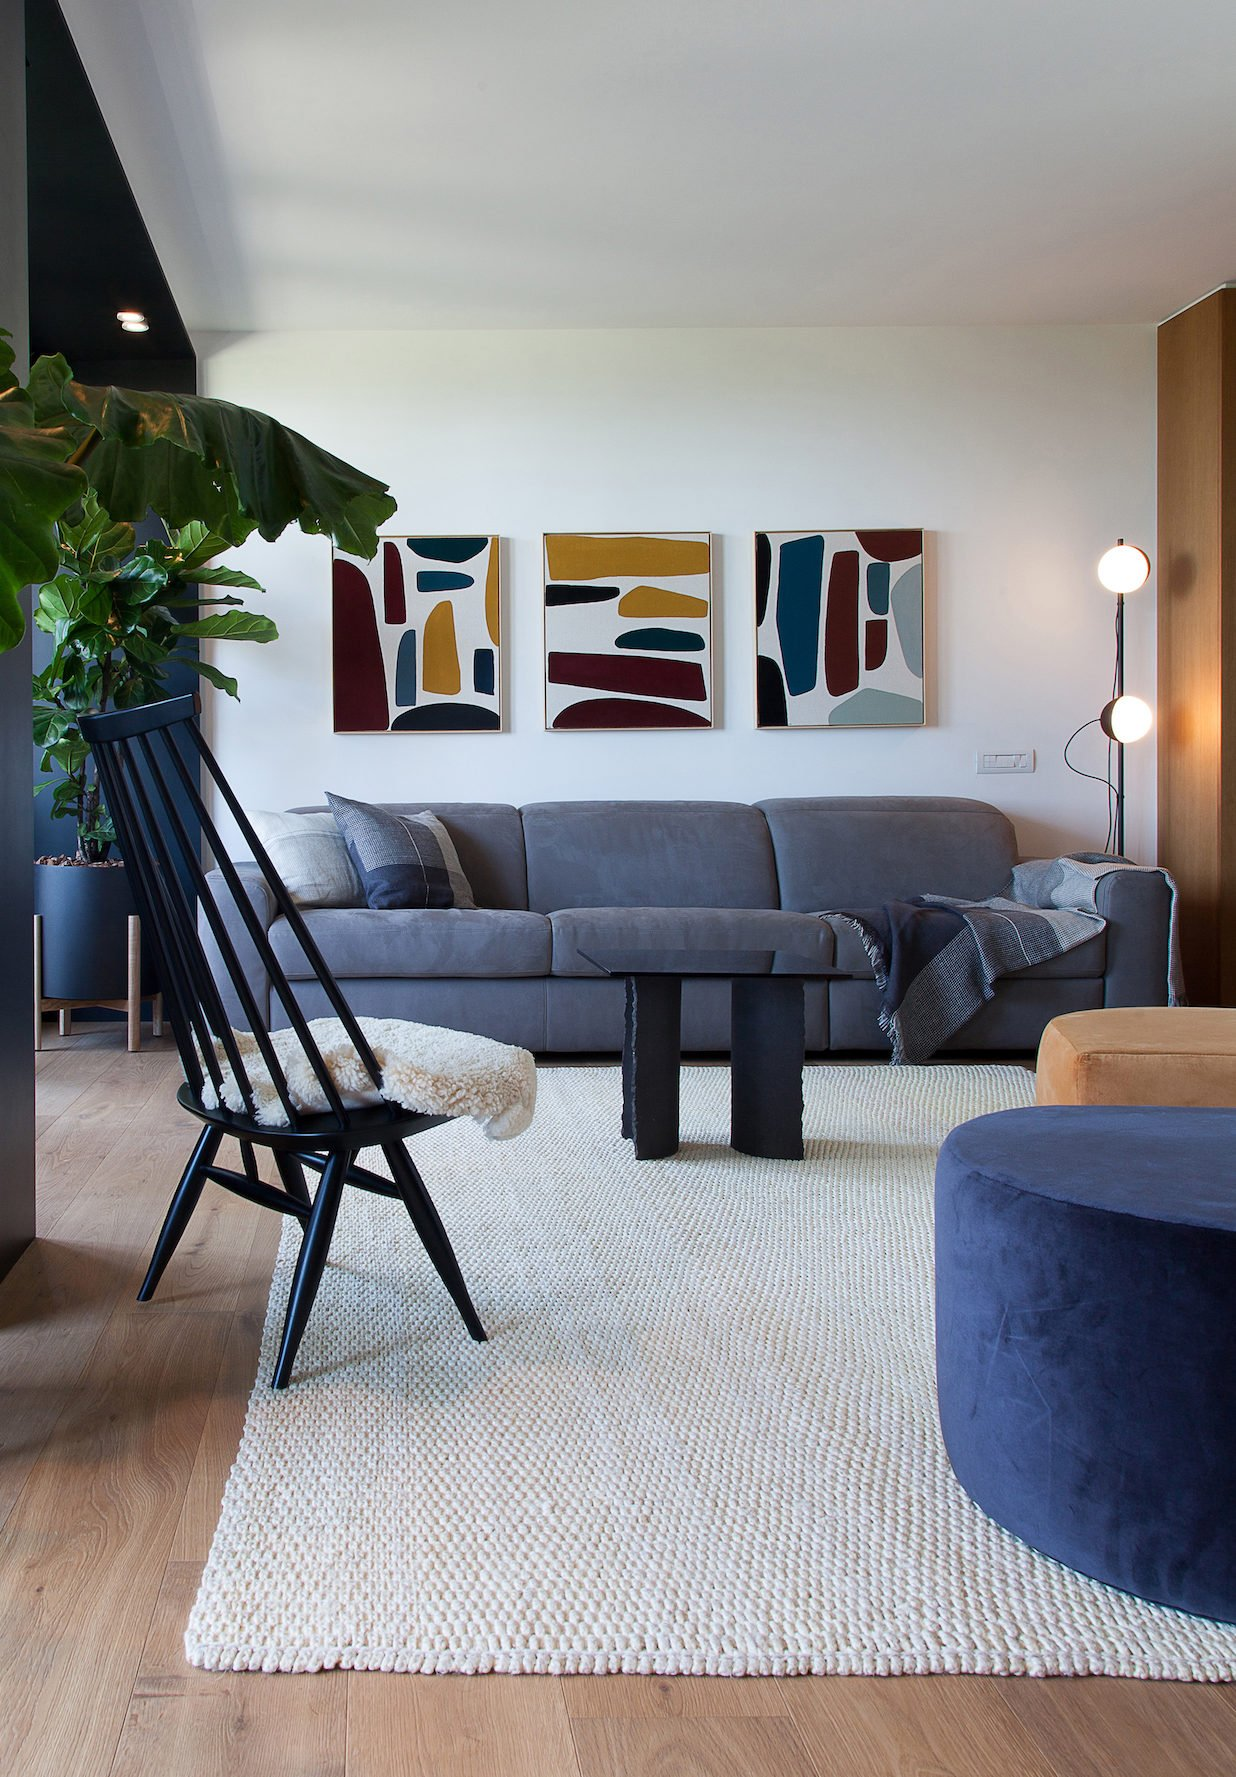 Affordable Art Upgrade: 84 Options for Every Style (All Under $200) - Bobby Berk